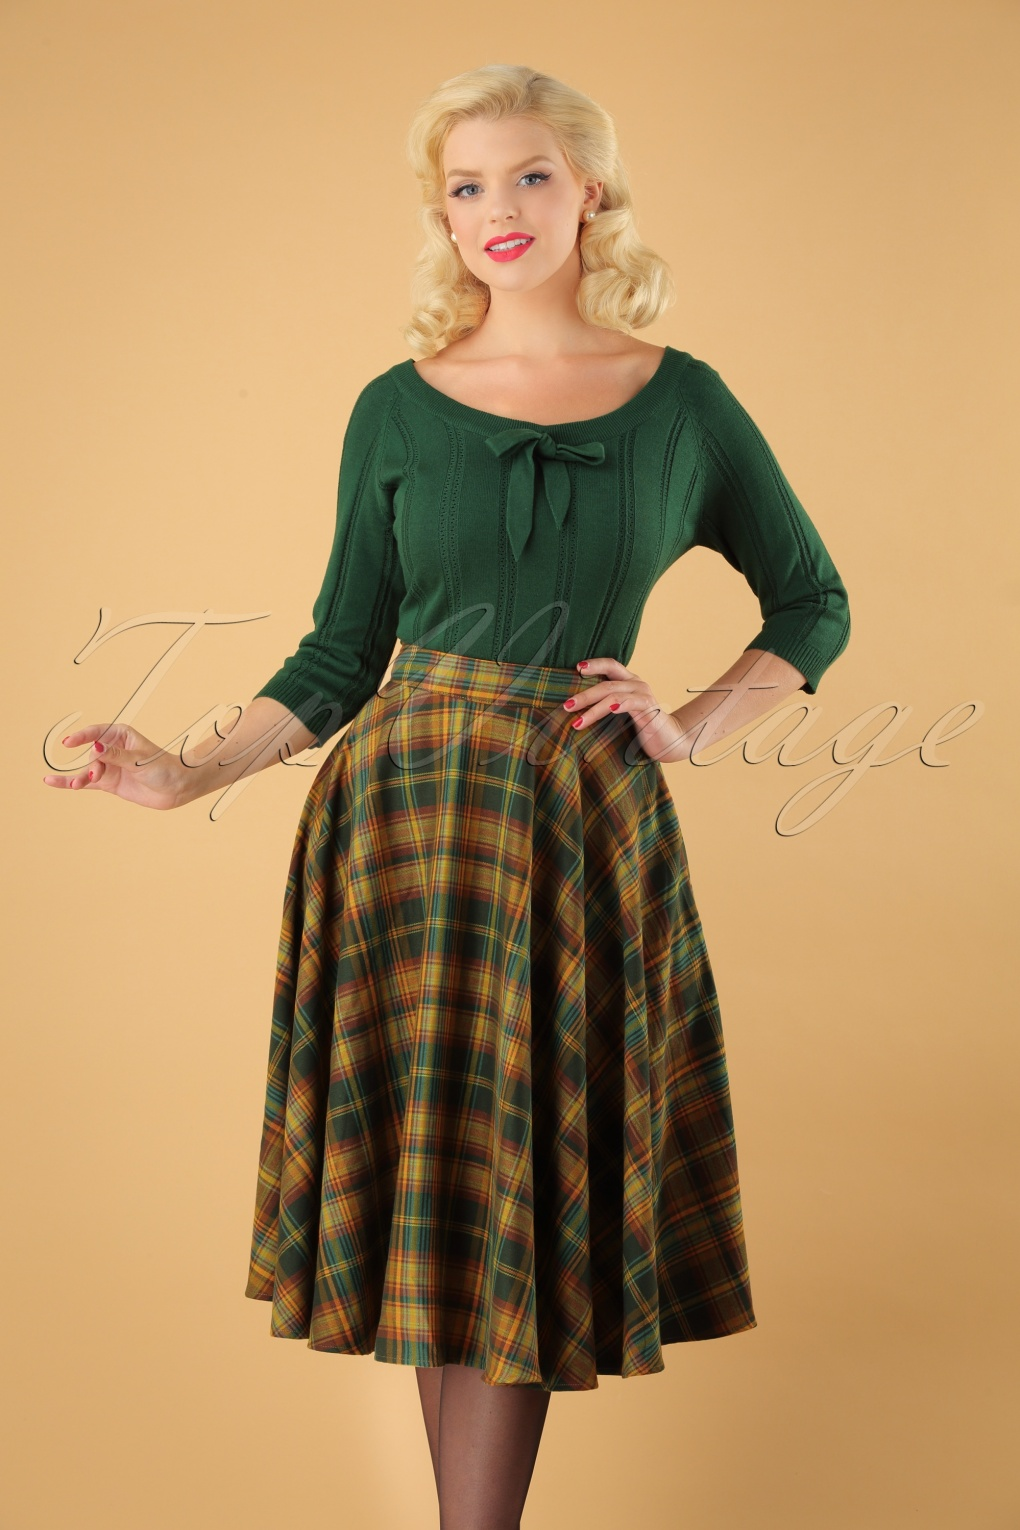 Retro Skirts: Vintage, Pencil, Circle, & Plus Sizes 40s Bridget Full Swing Skirt in Green Tartan £38.23 AT vintagedancer.com